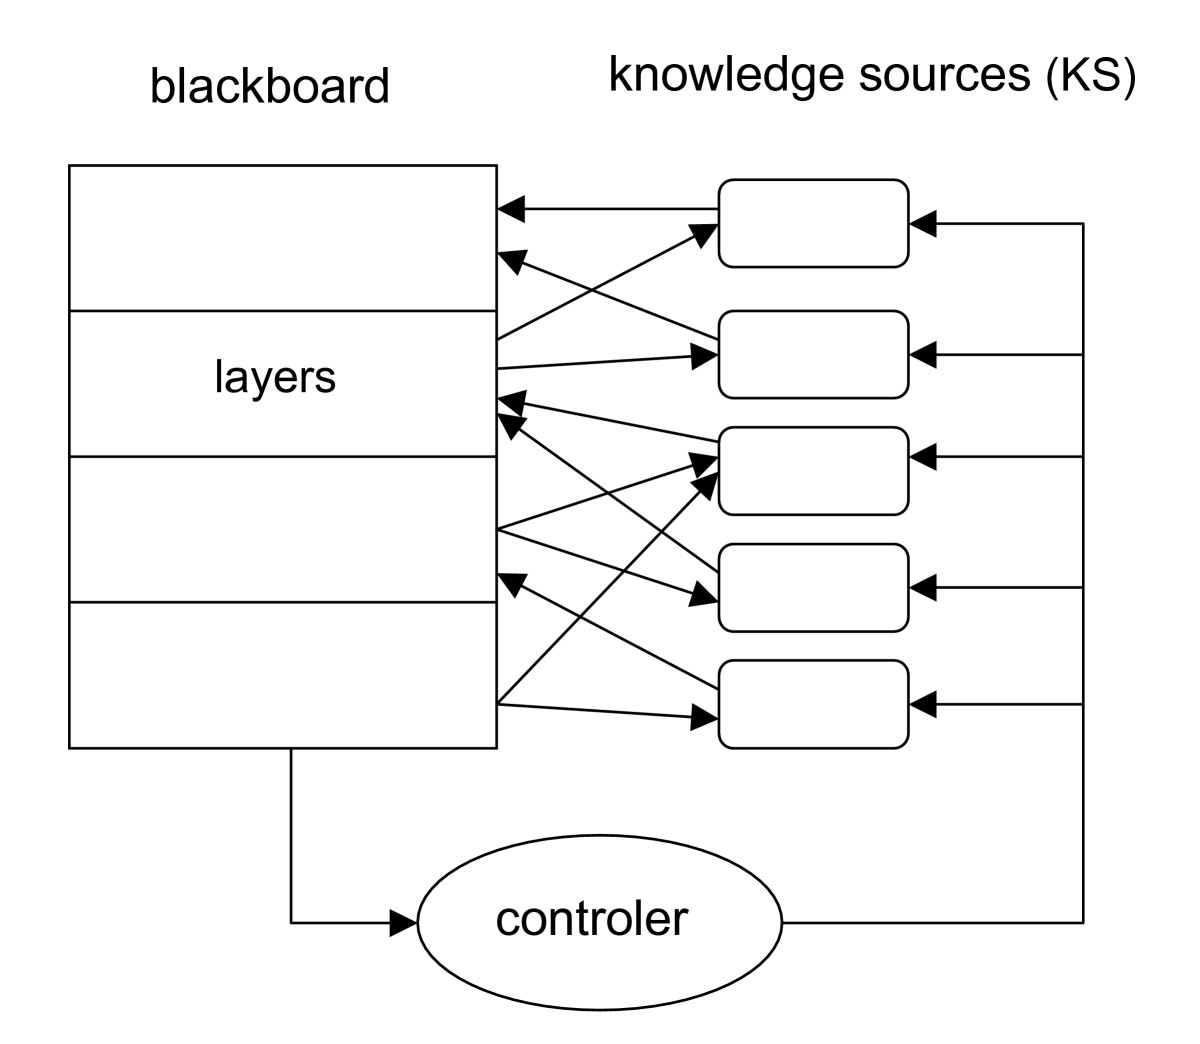 https://static-content.springer.com/image/art%3A10.1186%2F1471-2105-7-450/MediaObjects/12859_2006_Article_1189_Fig1_HTML.jpg